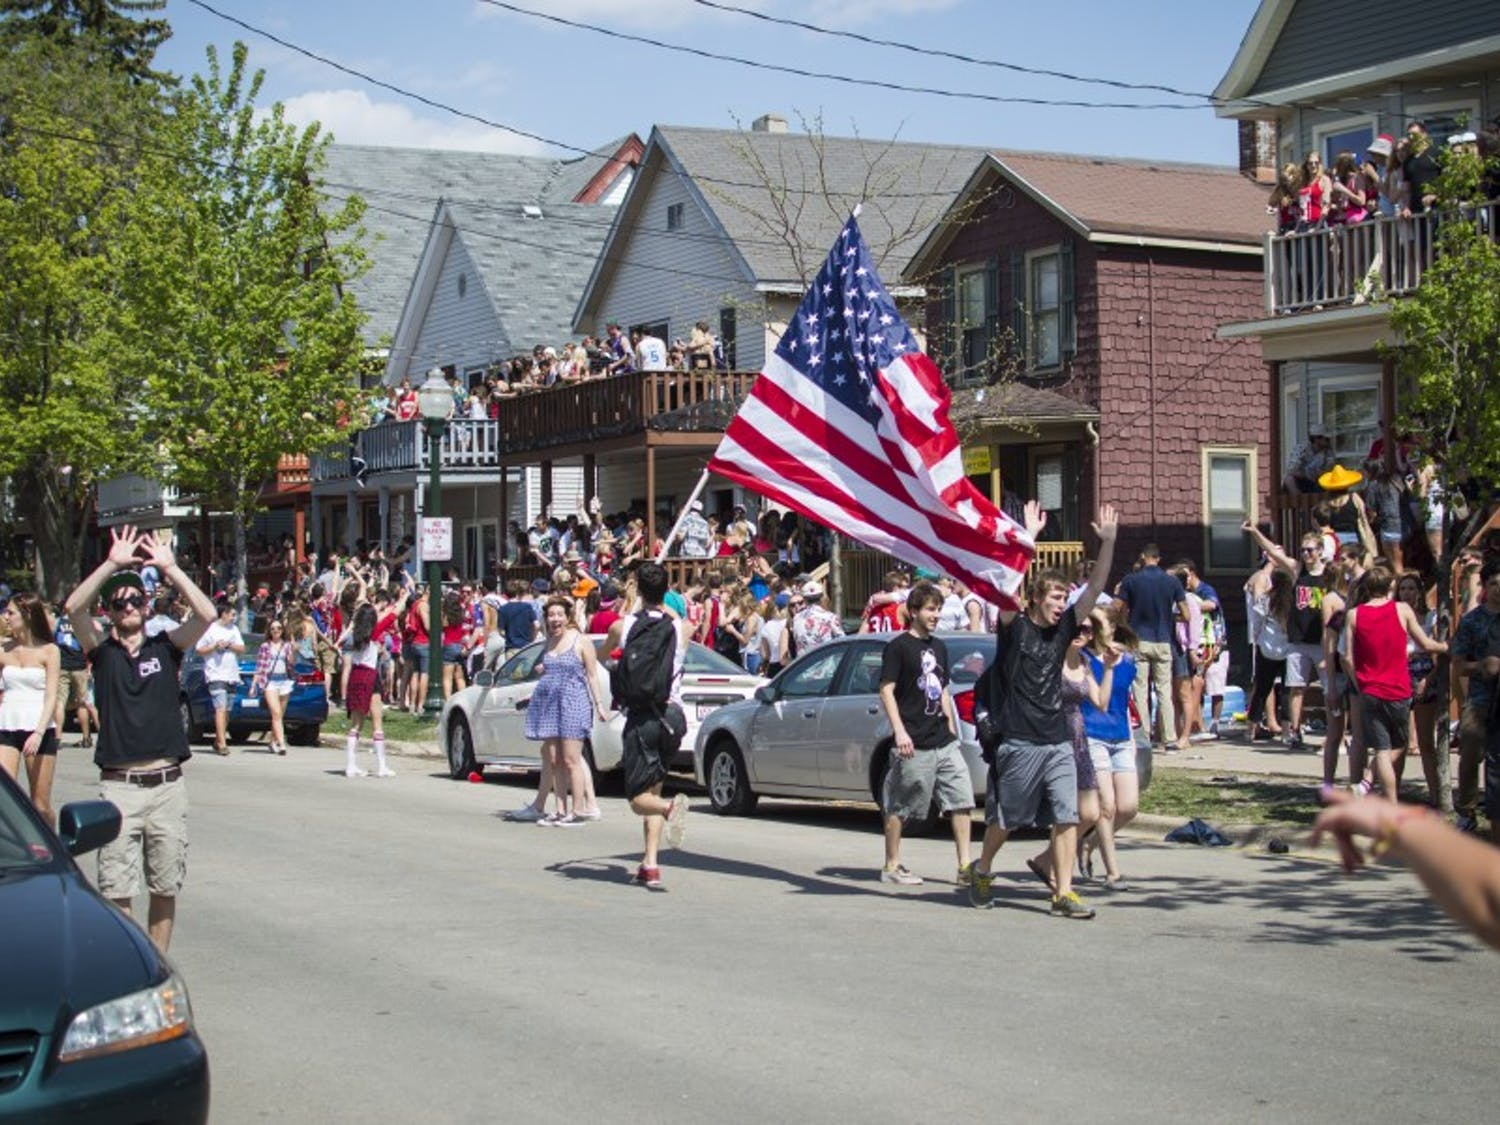 The Madison Police Department is preparing to police the annual Mifflin Street Block Party this Saturday.